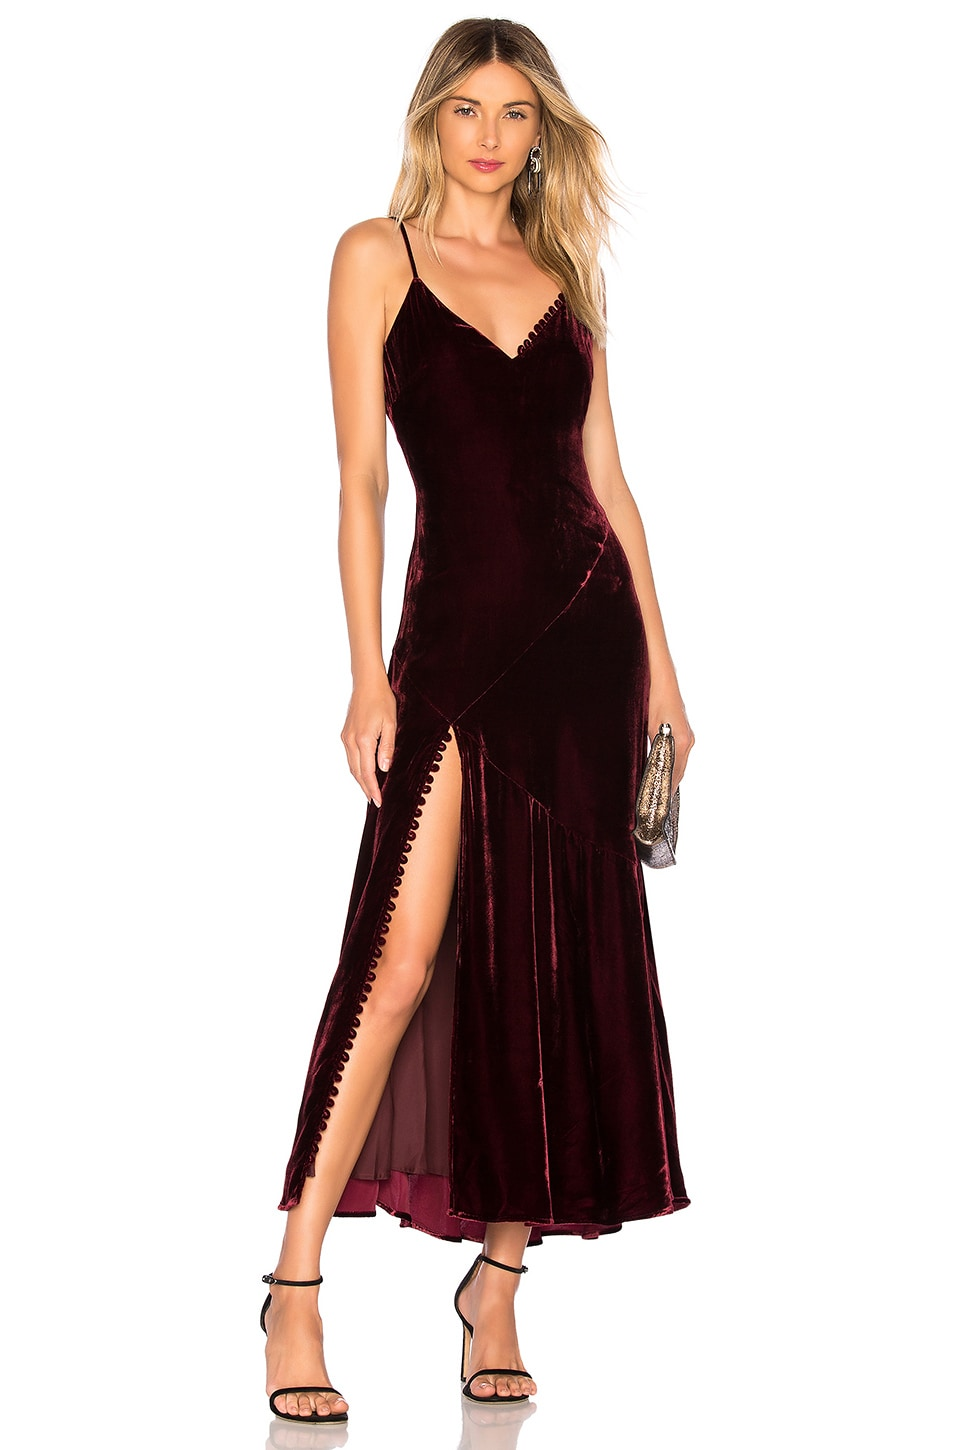 Nicholas NICHOLAS SILK VELVET SLIP PANEL DRESS IN WINE.